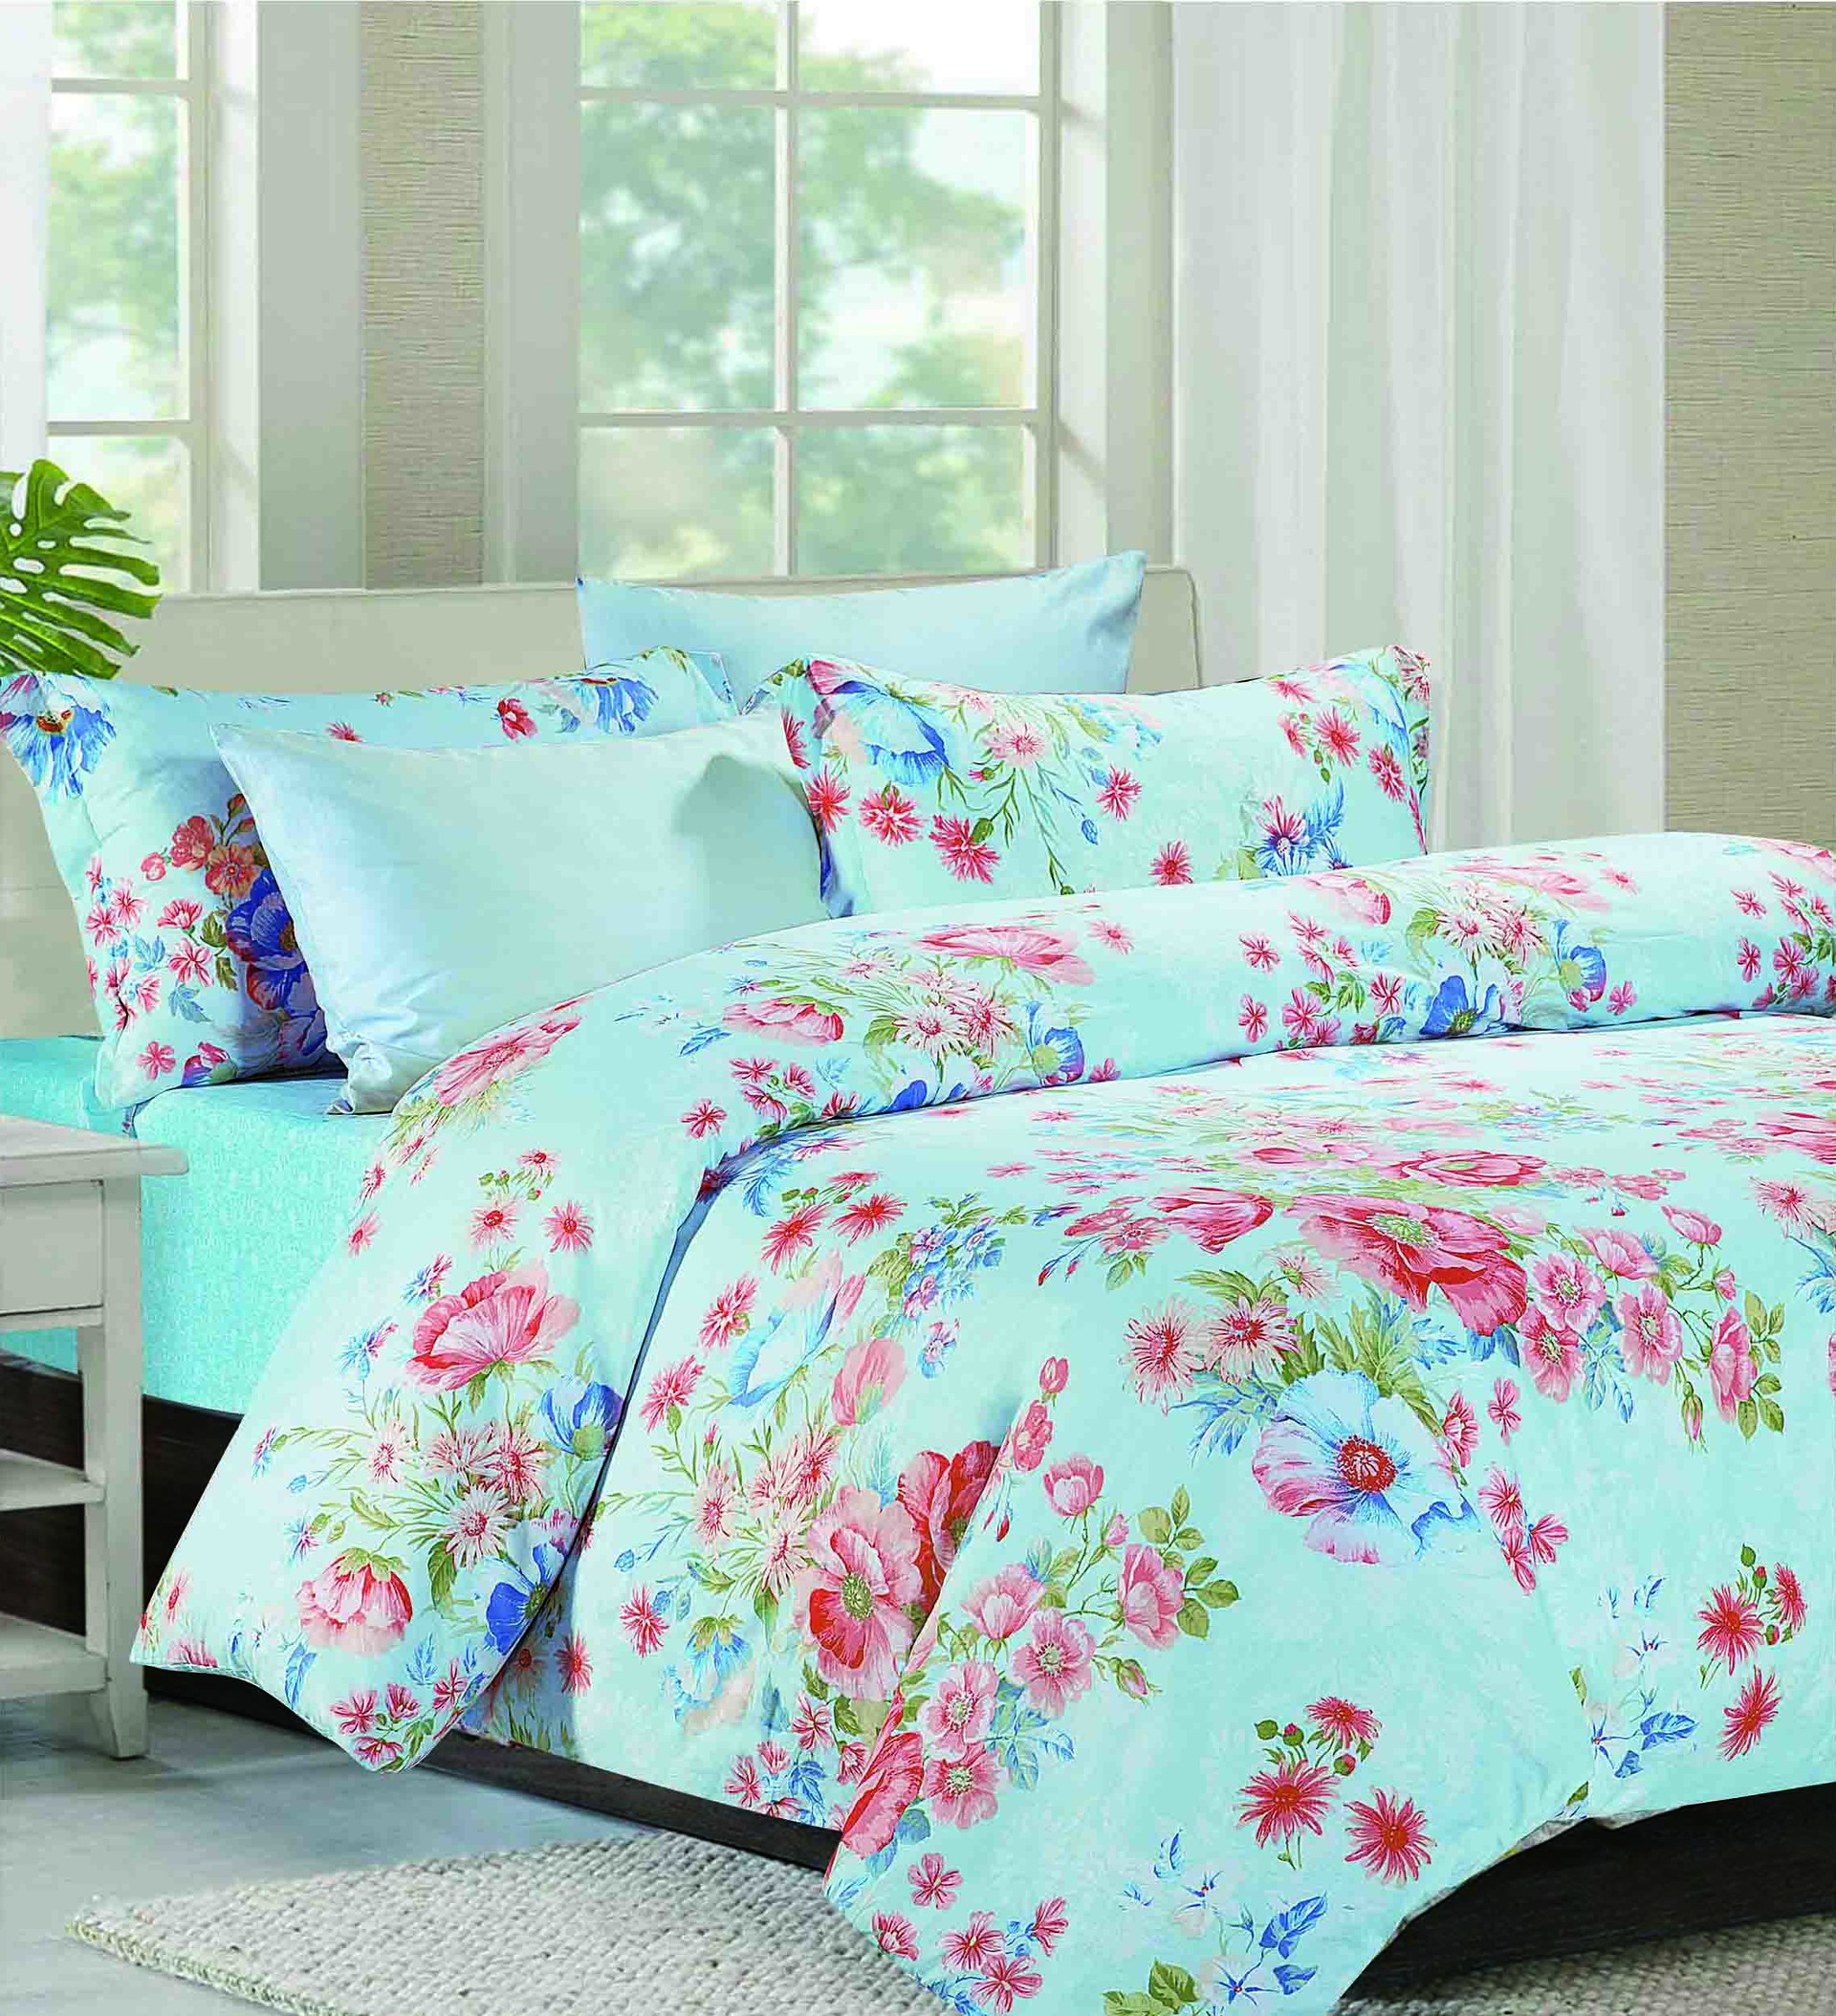 OEM Cotton Bedding Sets elegant gorgeous 100 cotton bedding sets